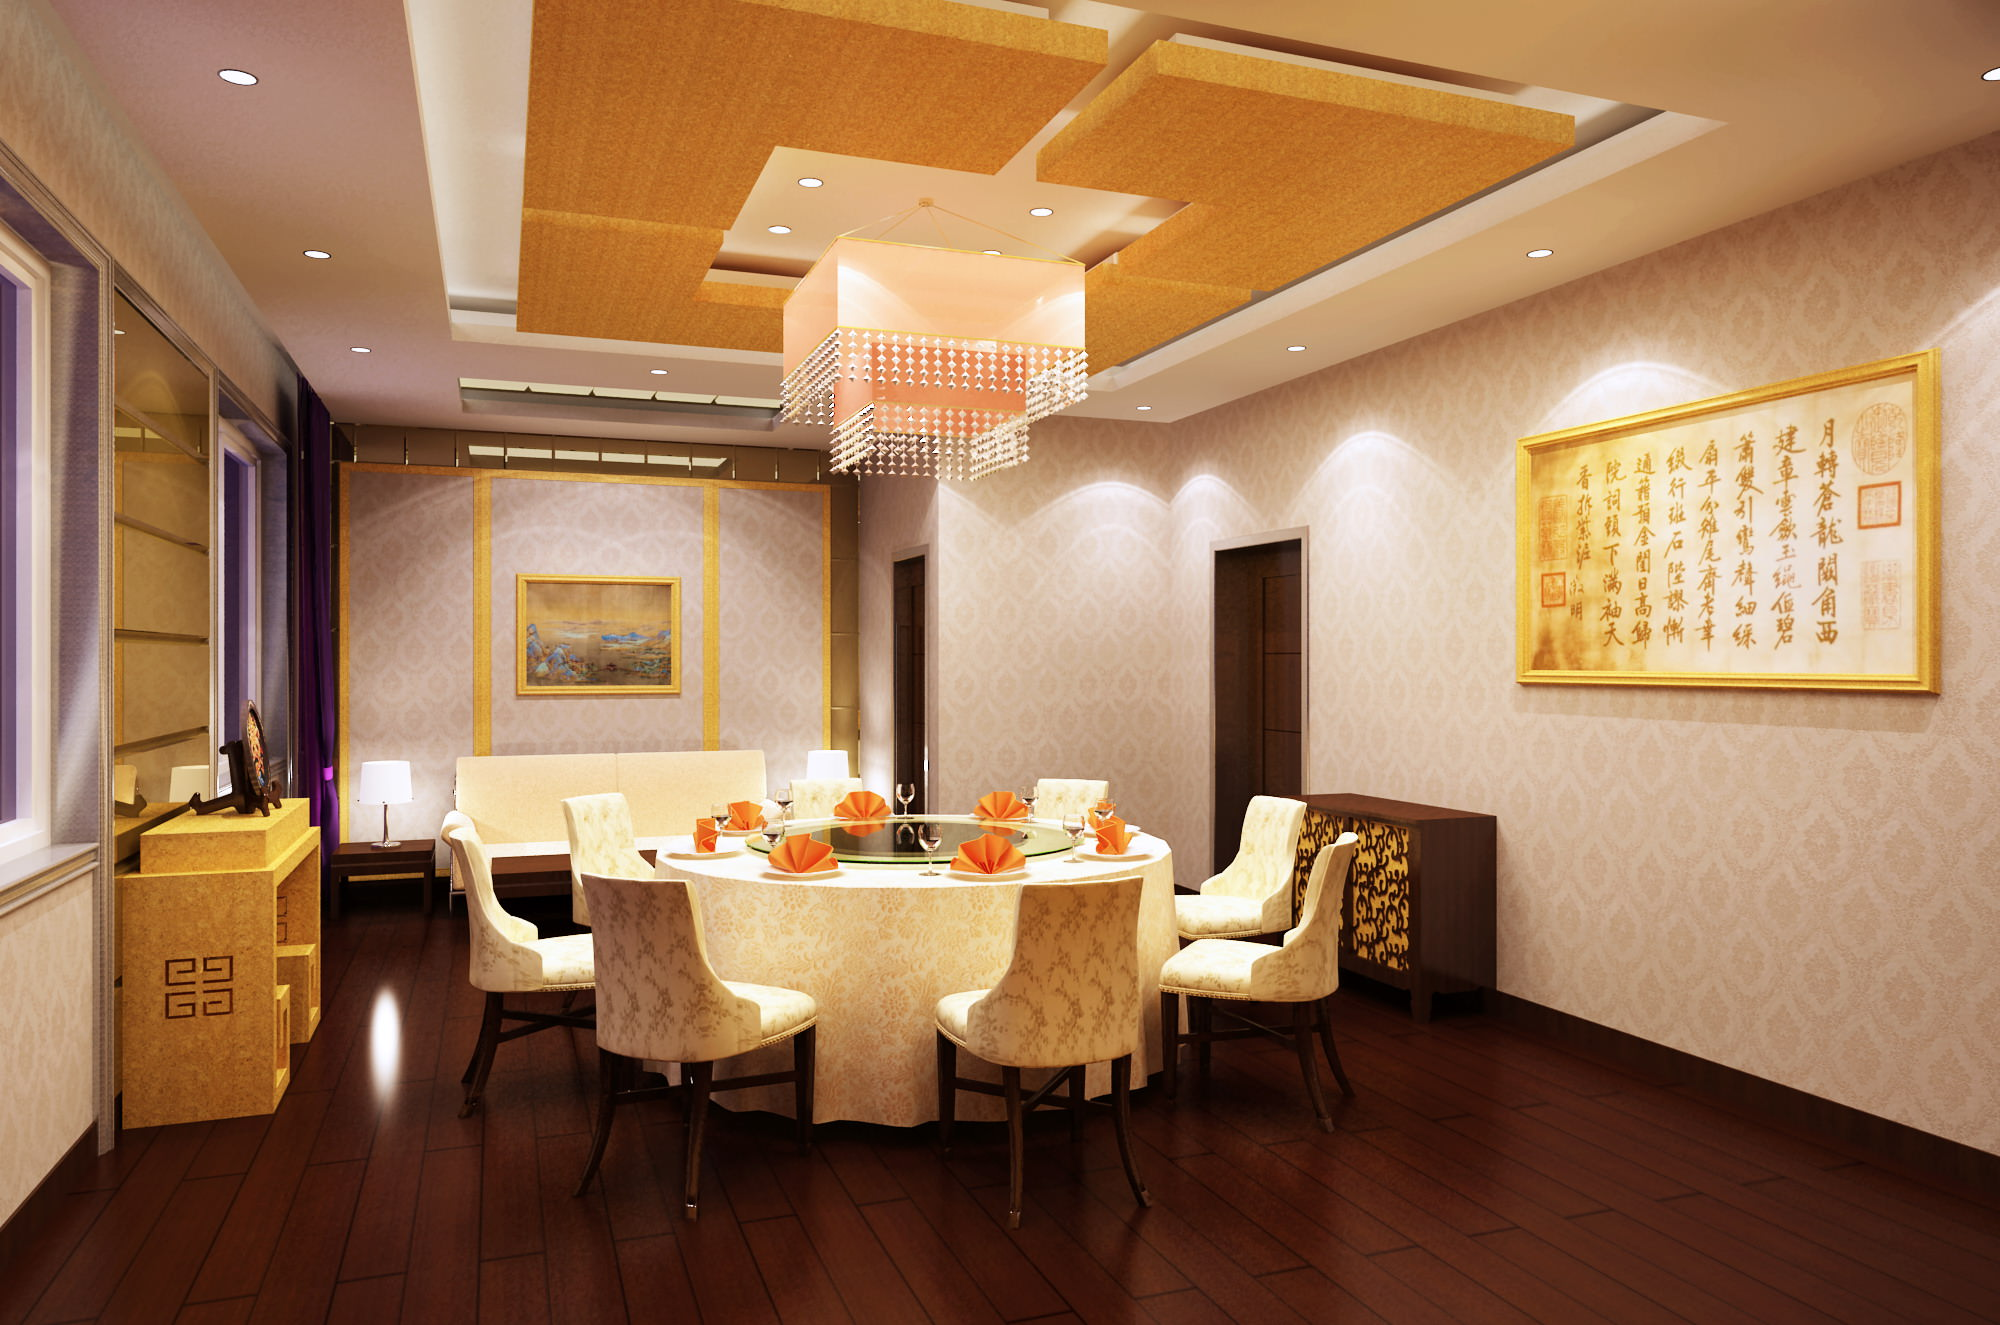 Oriental chinese style dining room 3d model max for Dining room 3d model